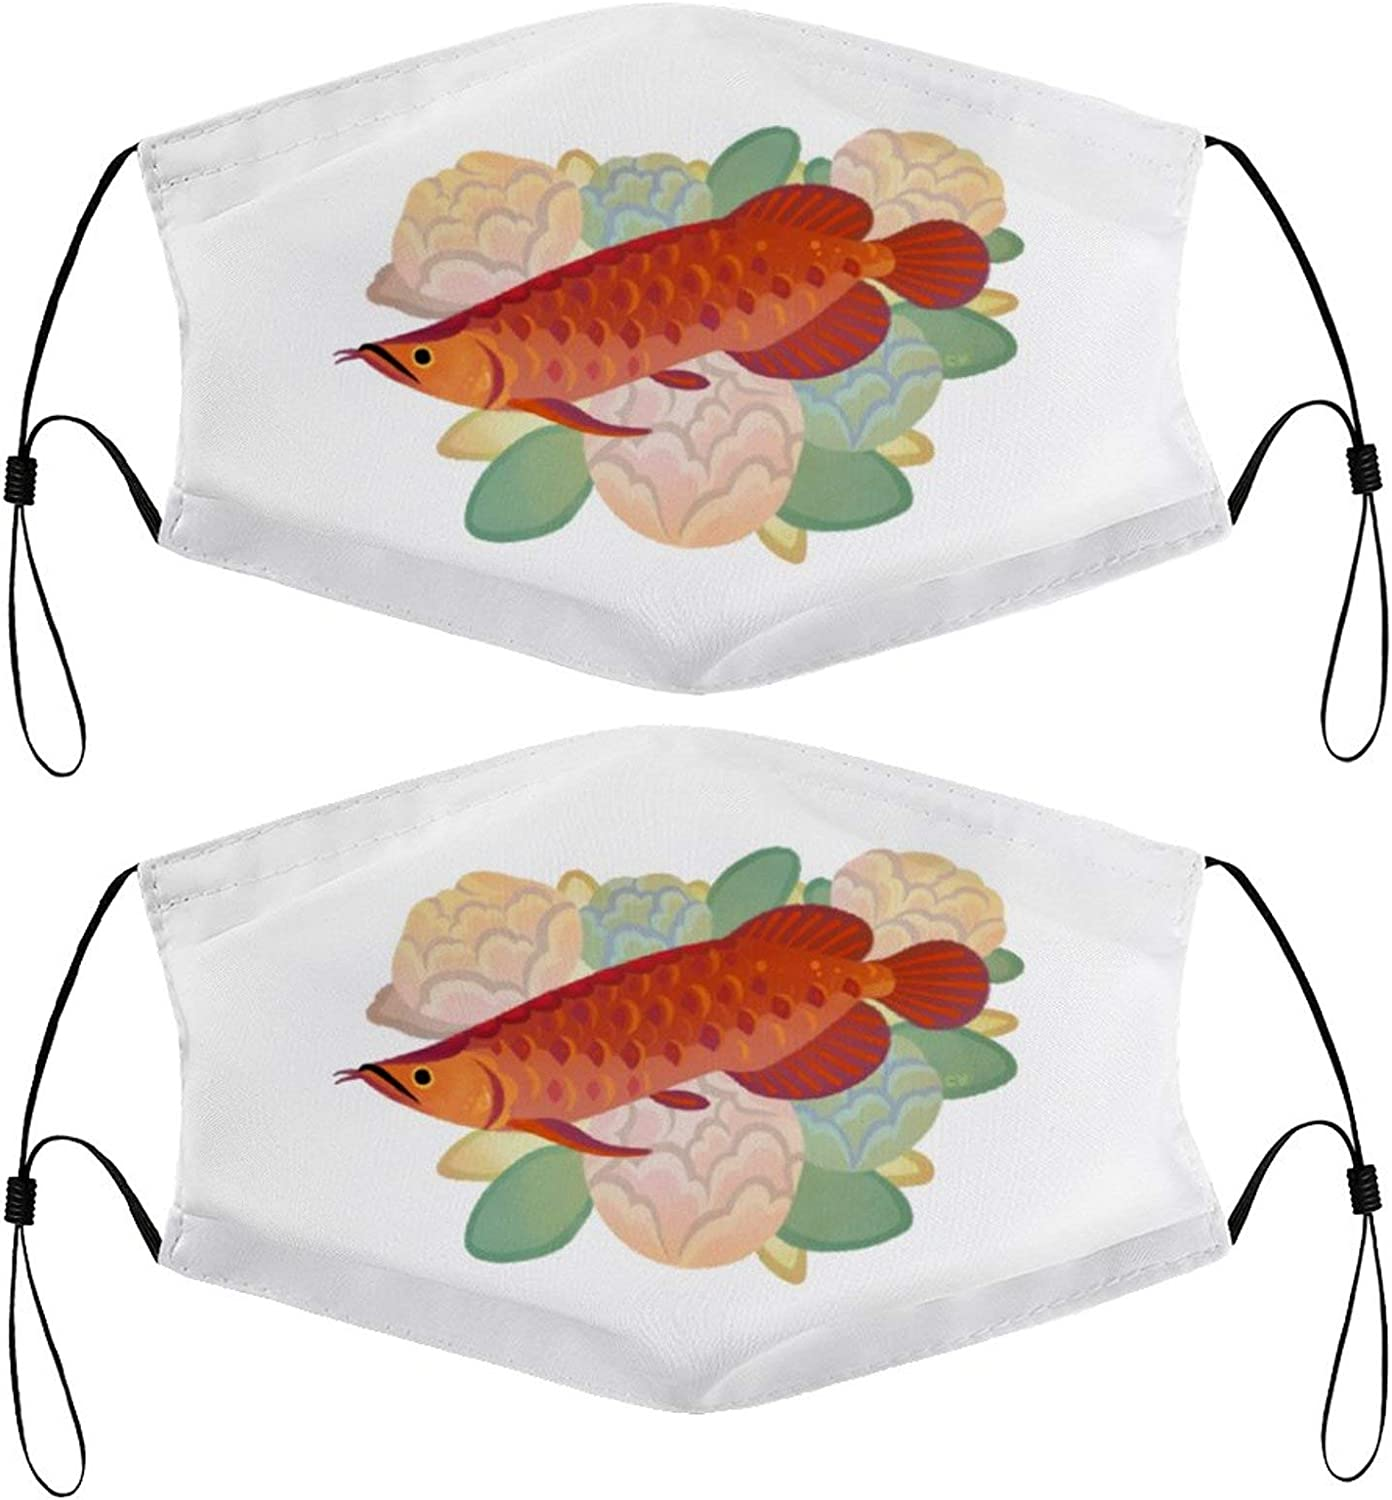 Arowana and Flower Kids Face Masks Set of 2 with 4 Filters Washable Reusable Breathable Black Cloth Bandanas Scarf for Unisex Boys Girls